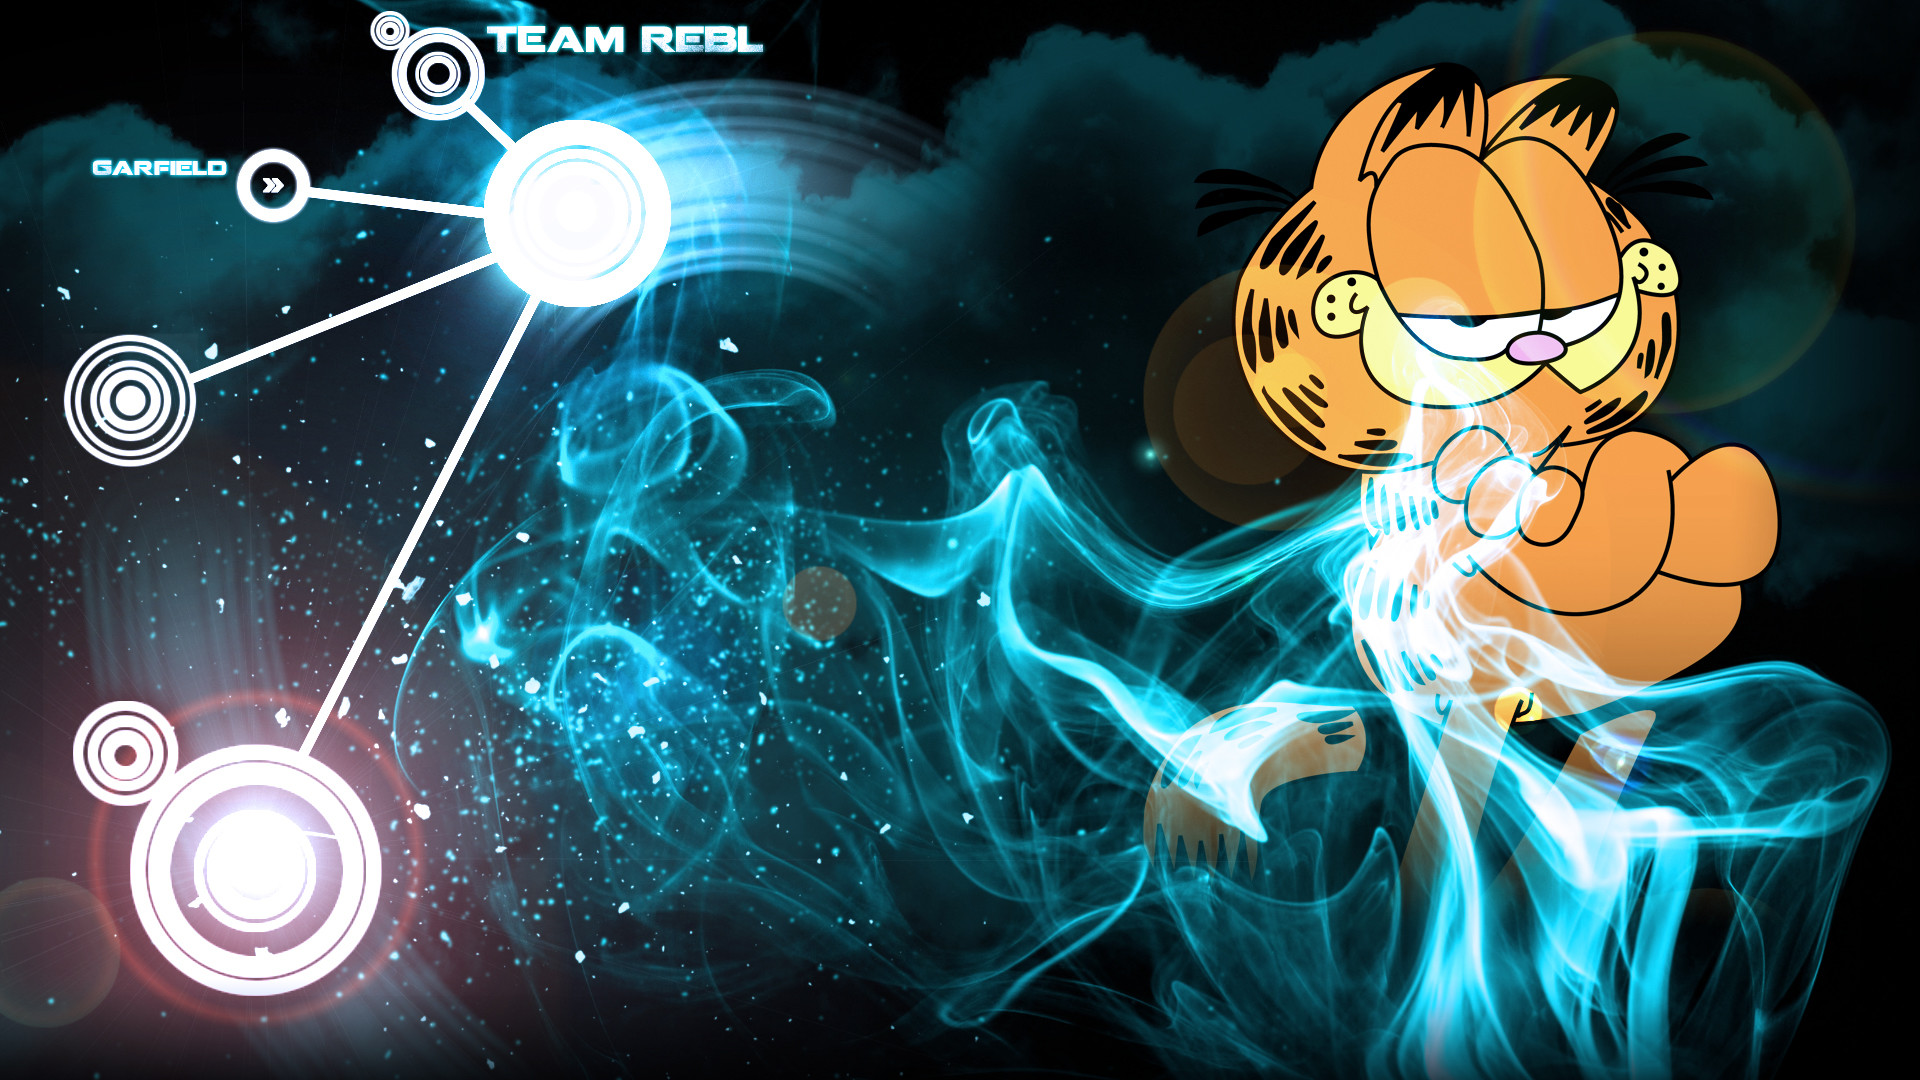 Res: 1920x1080, Garfield's Wallpaper by Kyouonee Garfield's Wallpaper by Kyouonee